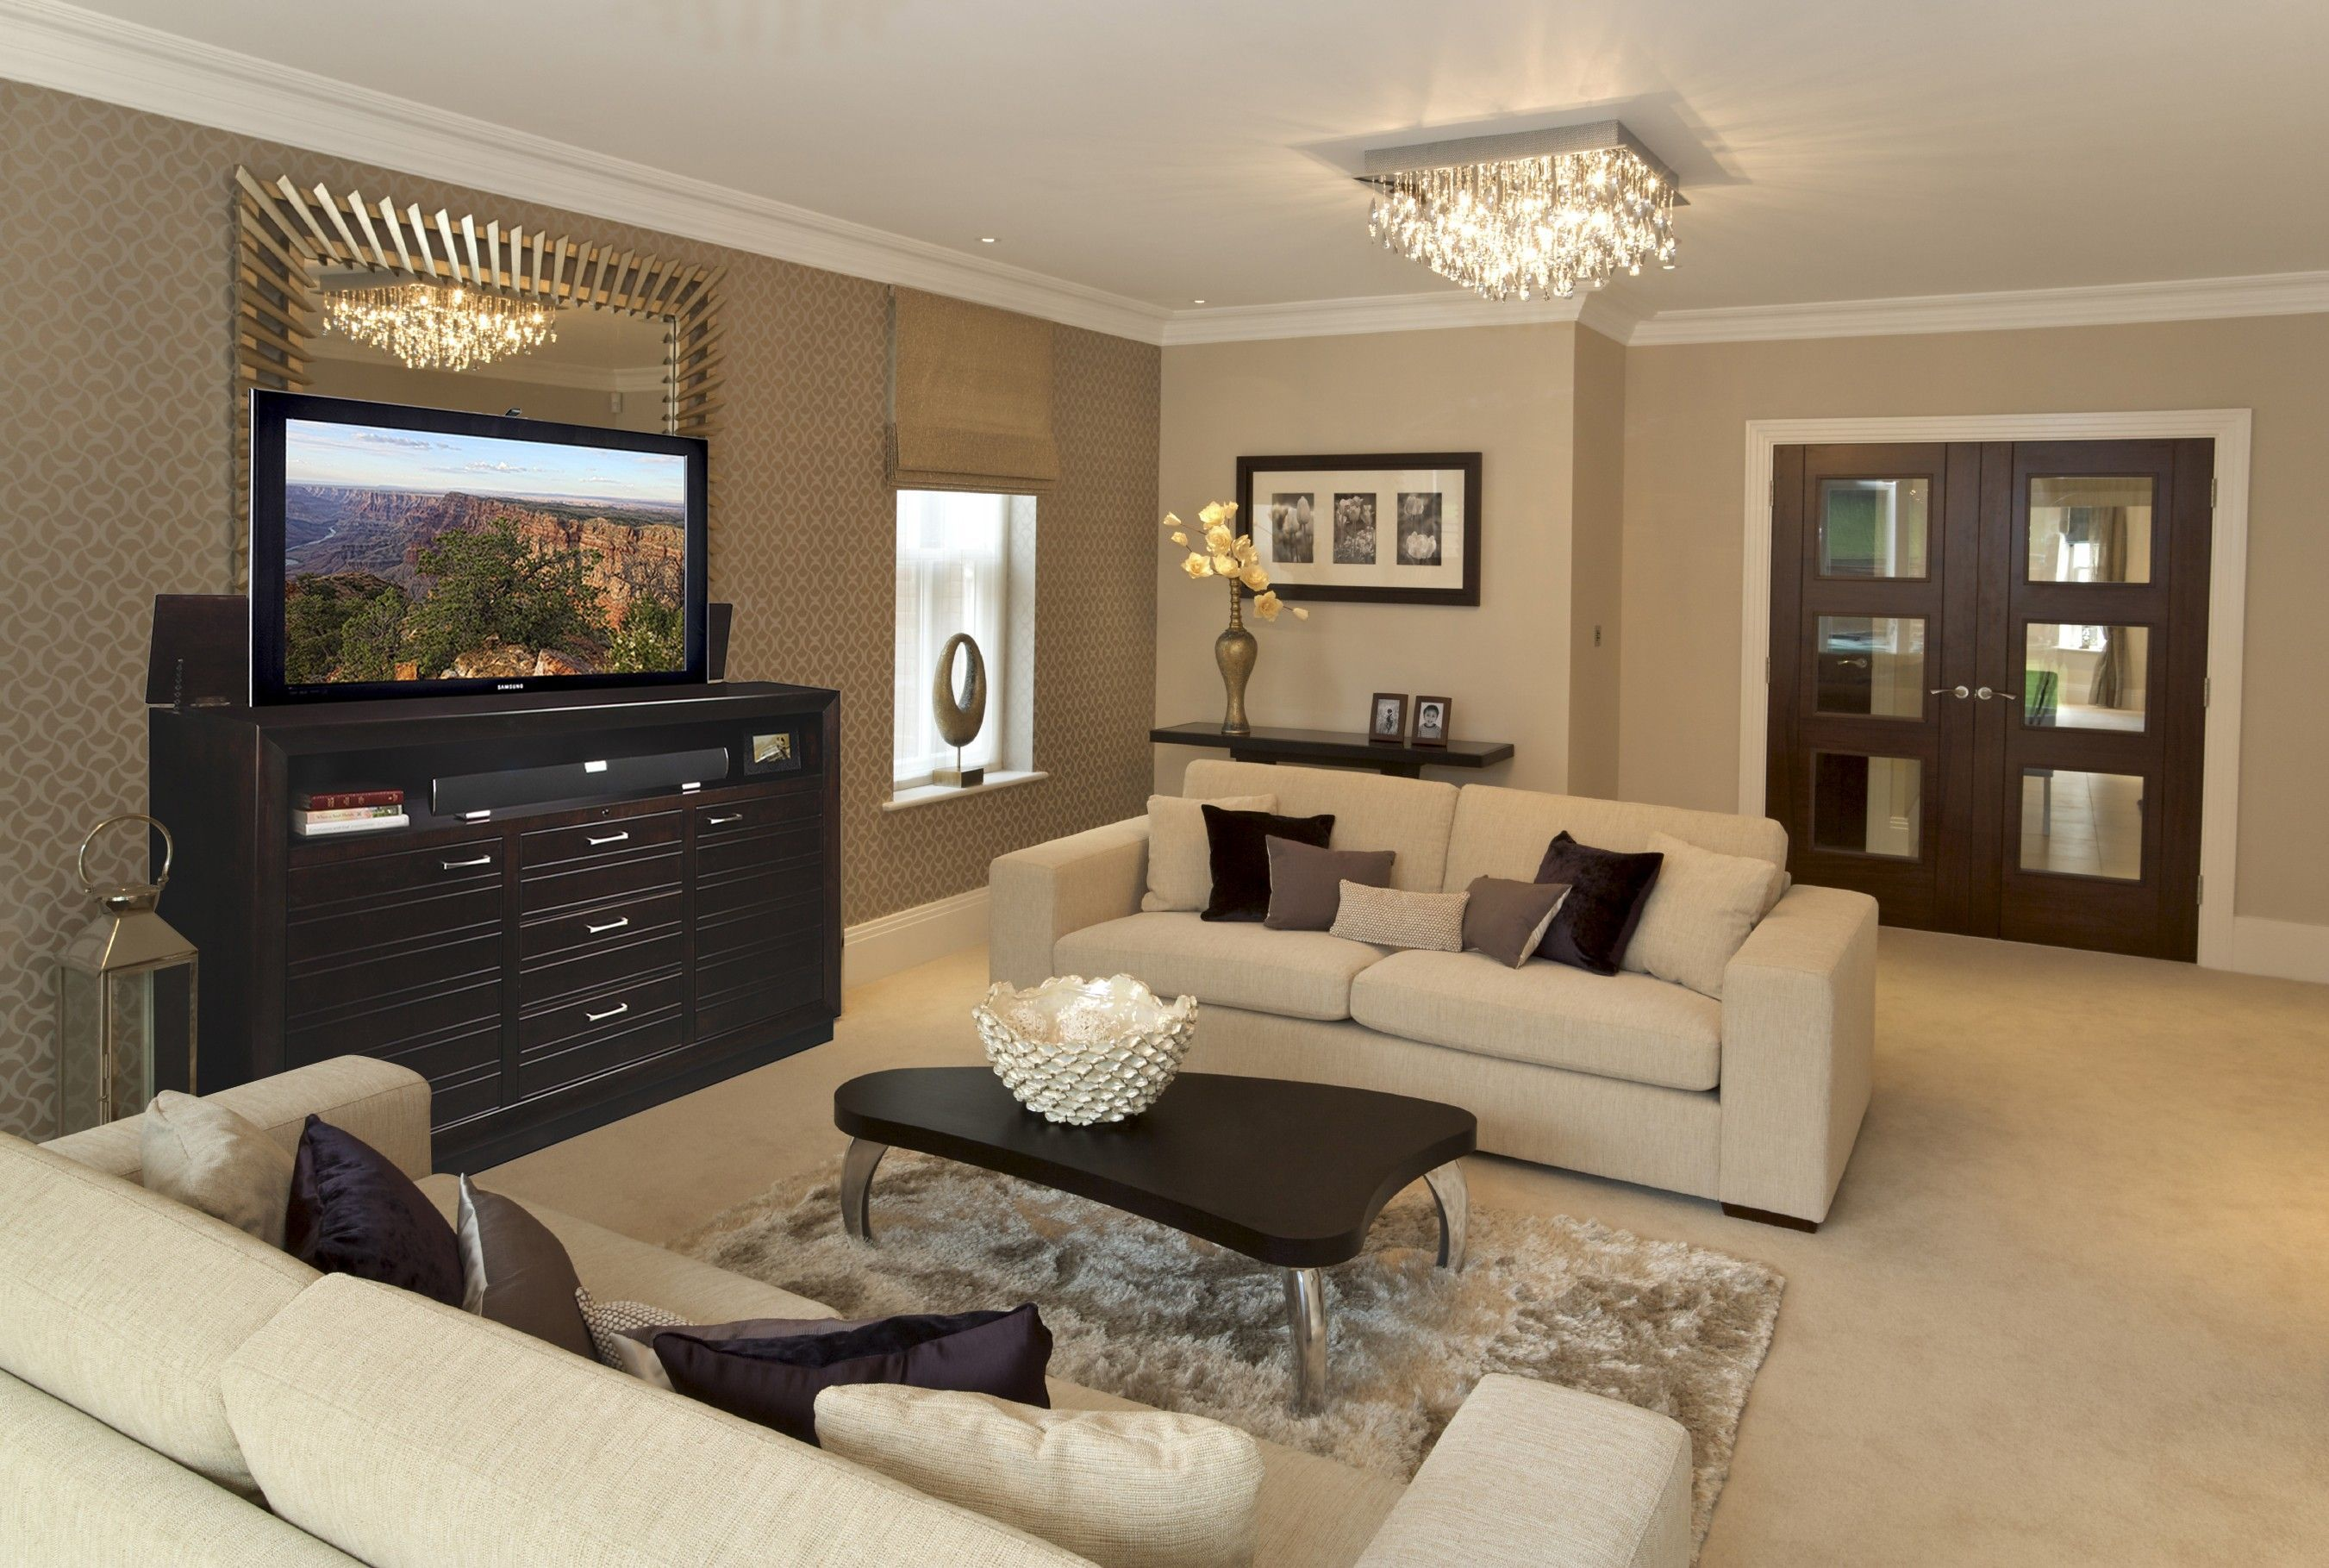 Concord xl tv lift by